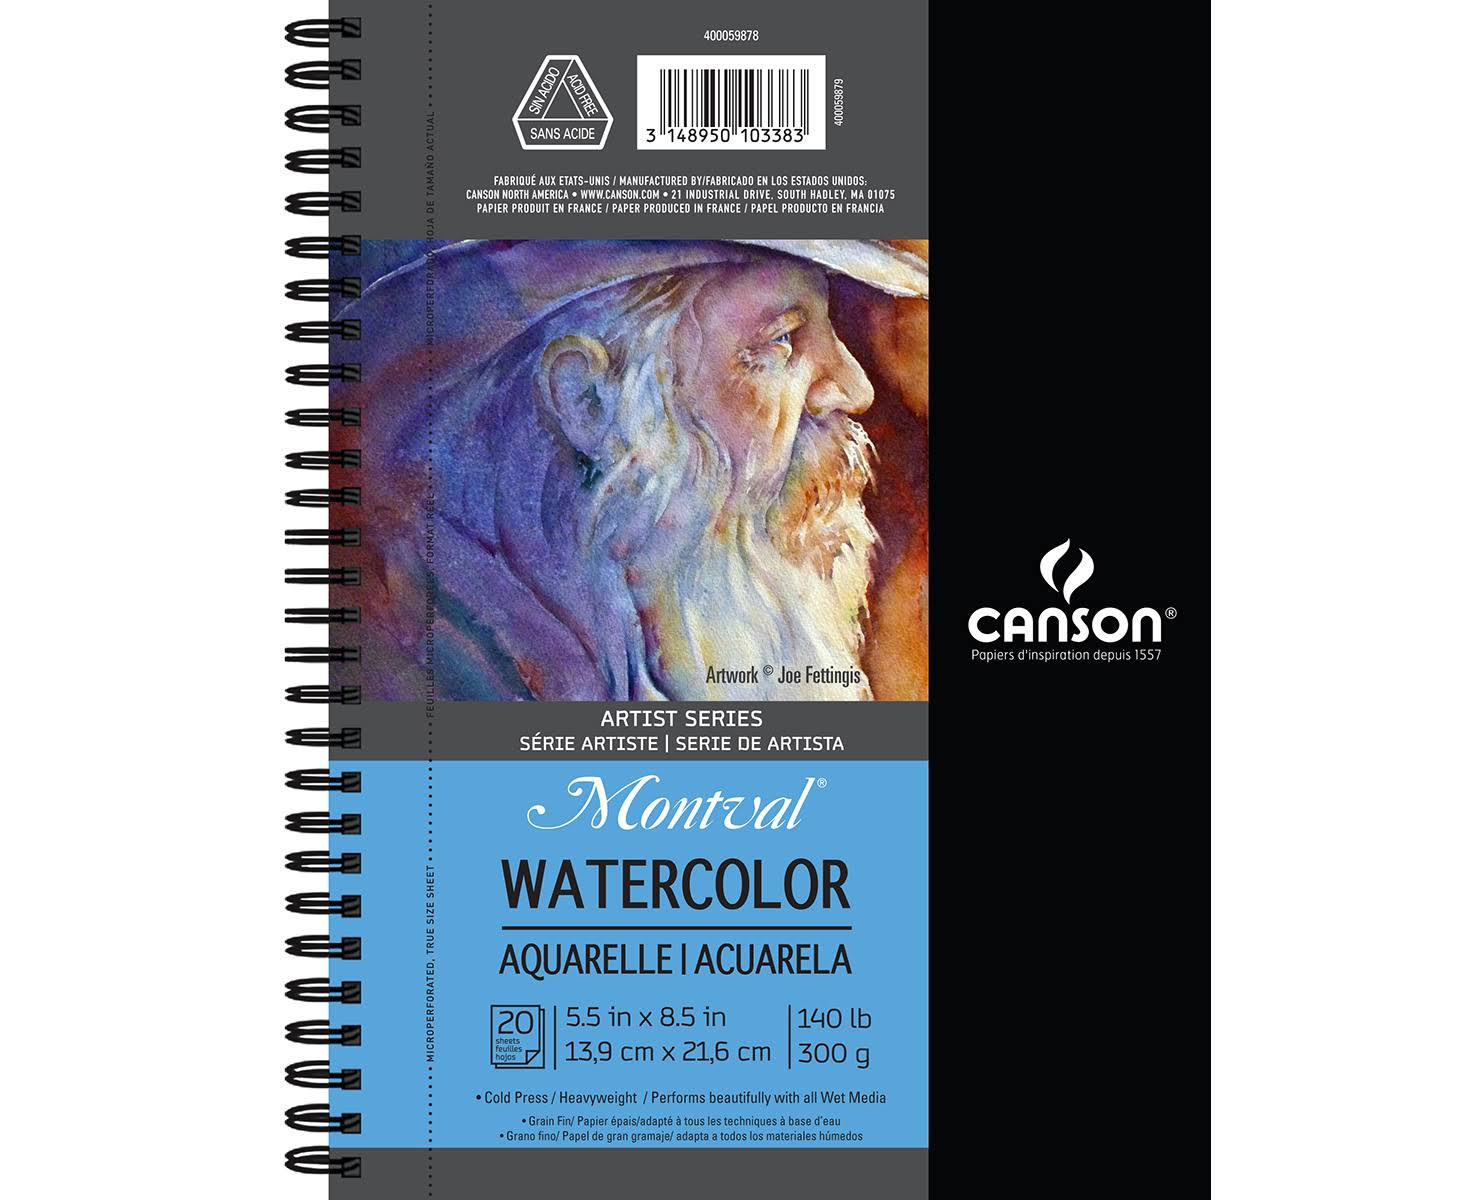 "Canson Artist Series Watercolor Pad - 5.5"" x 8.5"" Side Wire"